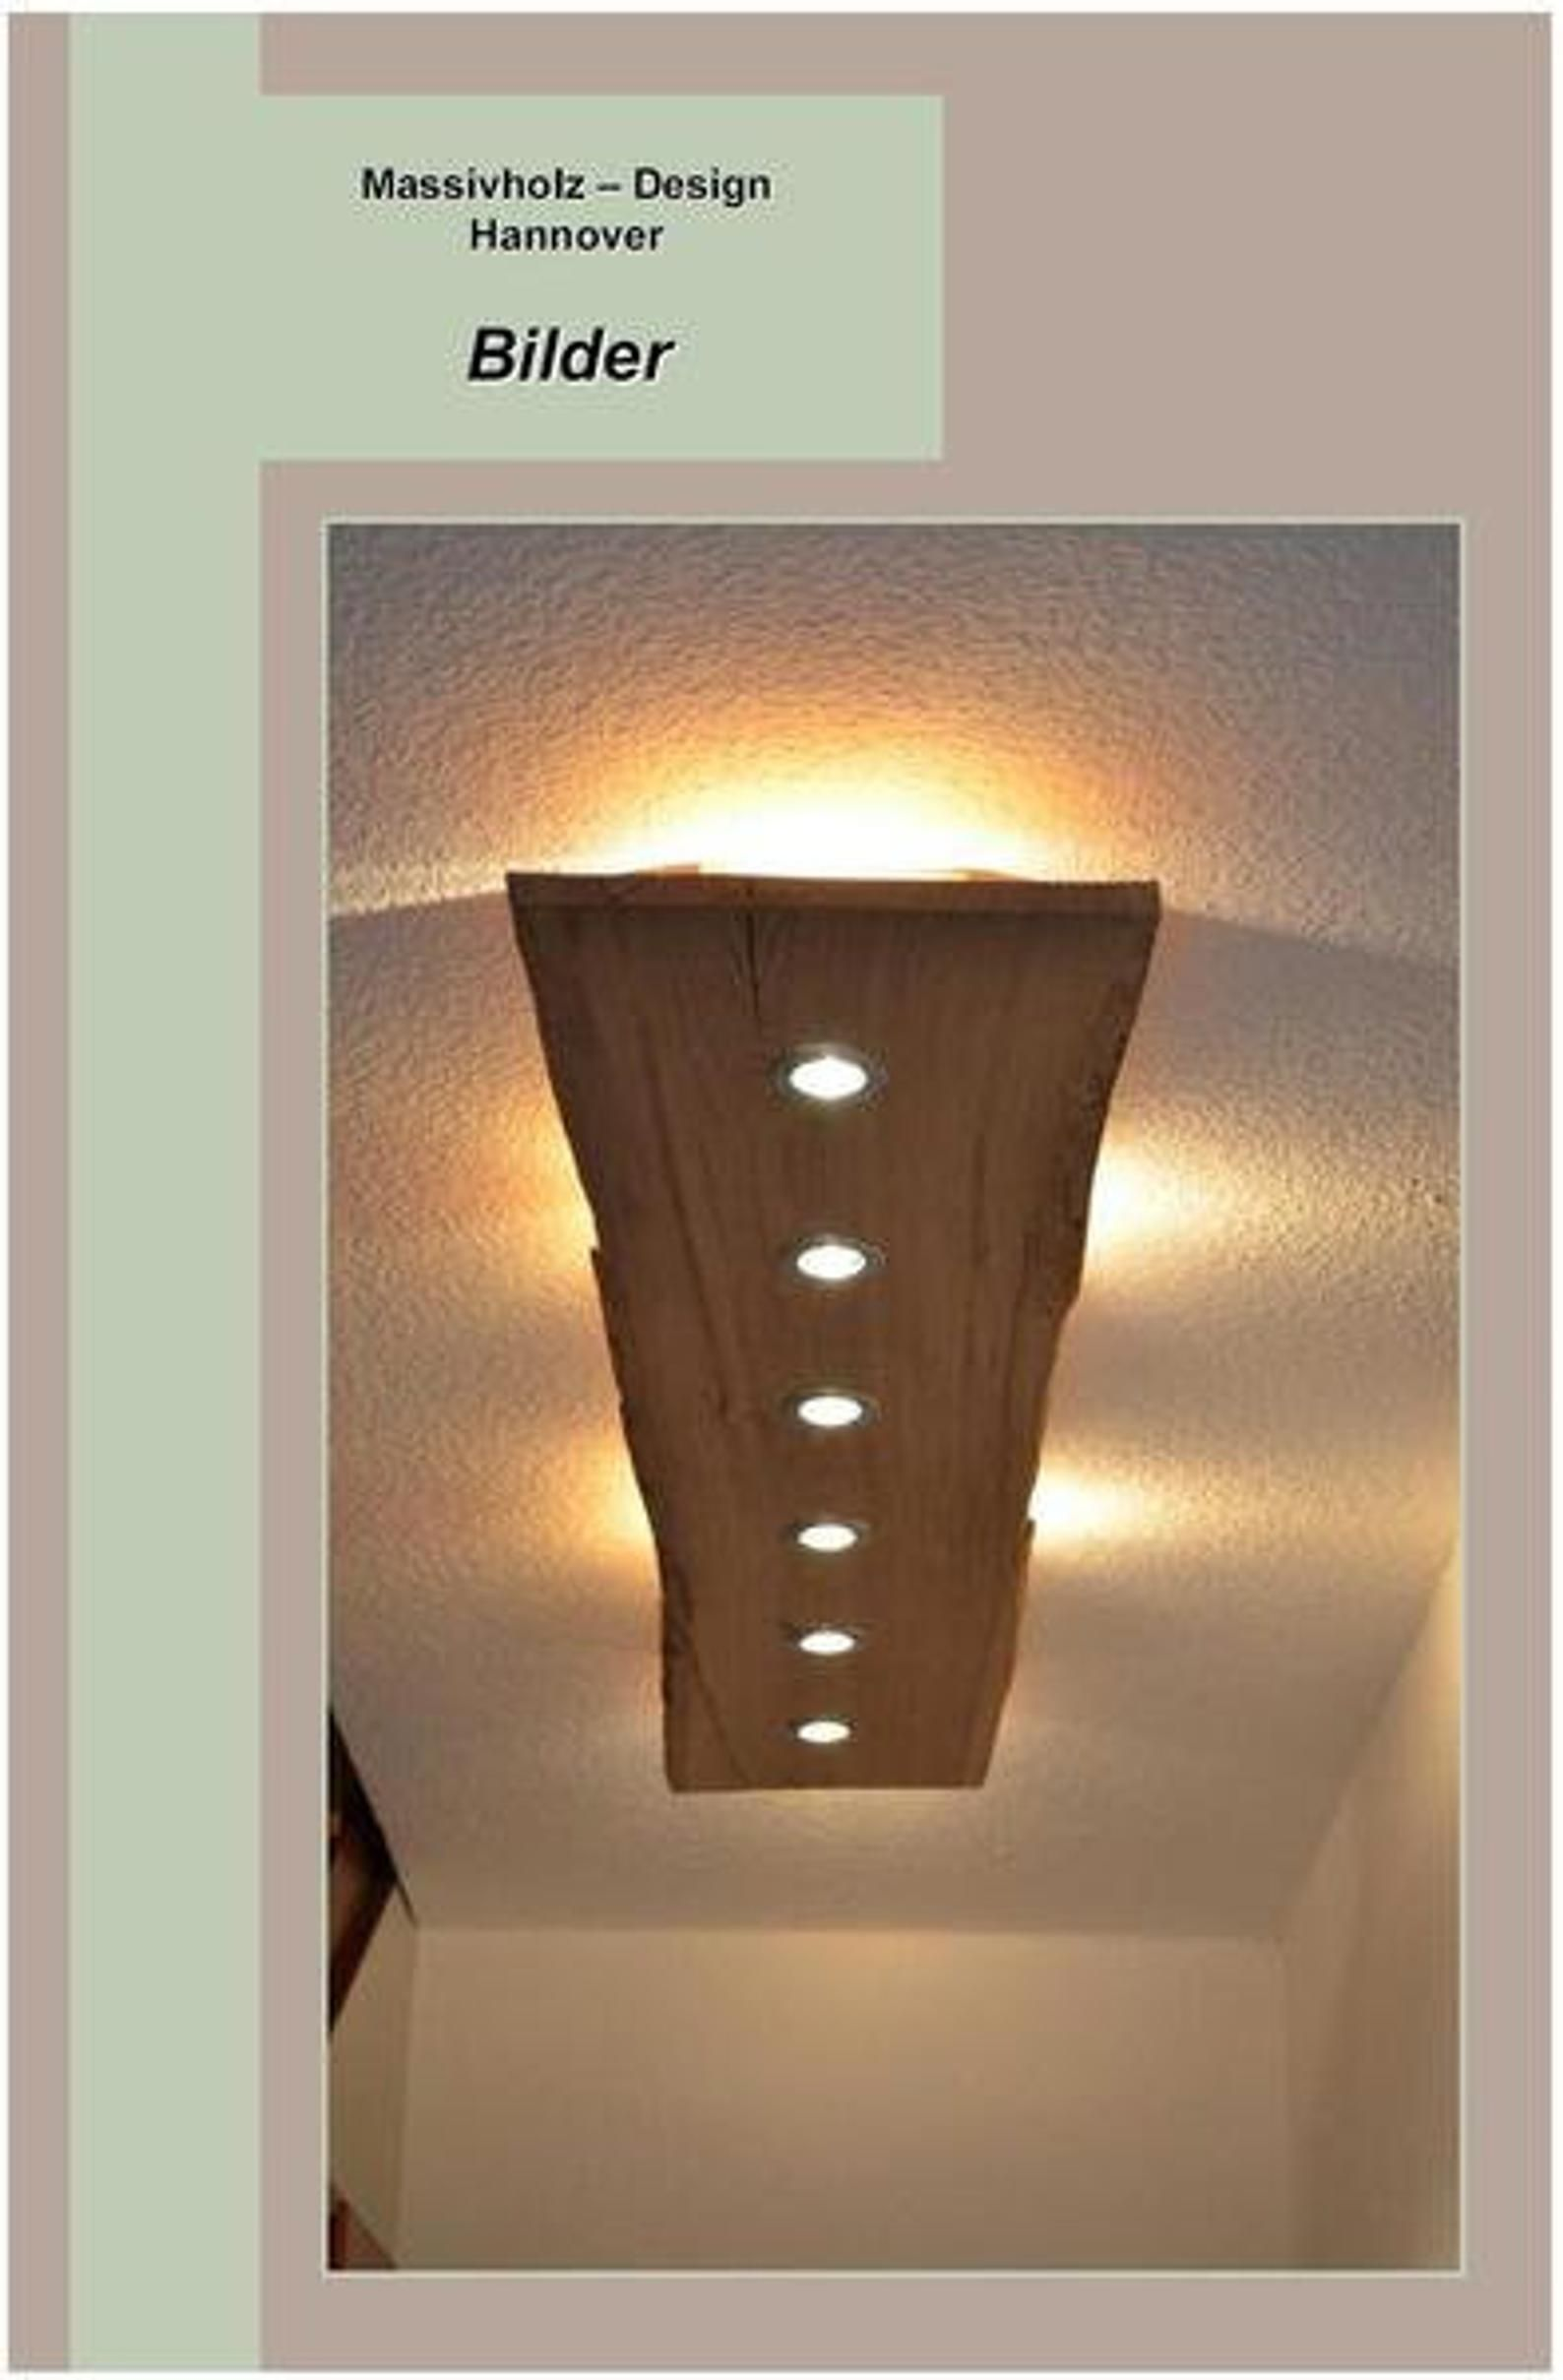 Massiv Holz Design Decken Lampe Led Etsy In 2020 Solid Wood Design Lamp Decor Ceiling Lamp